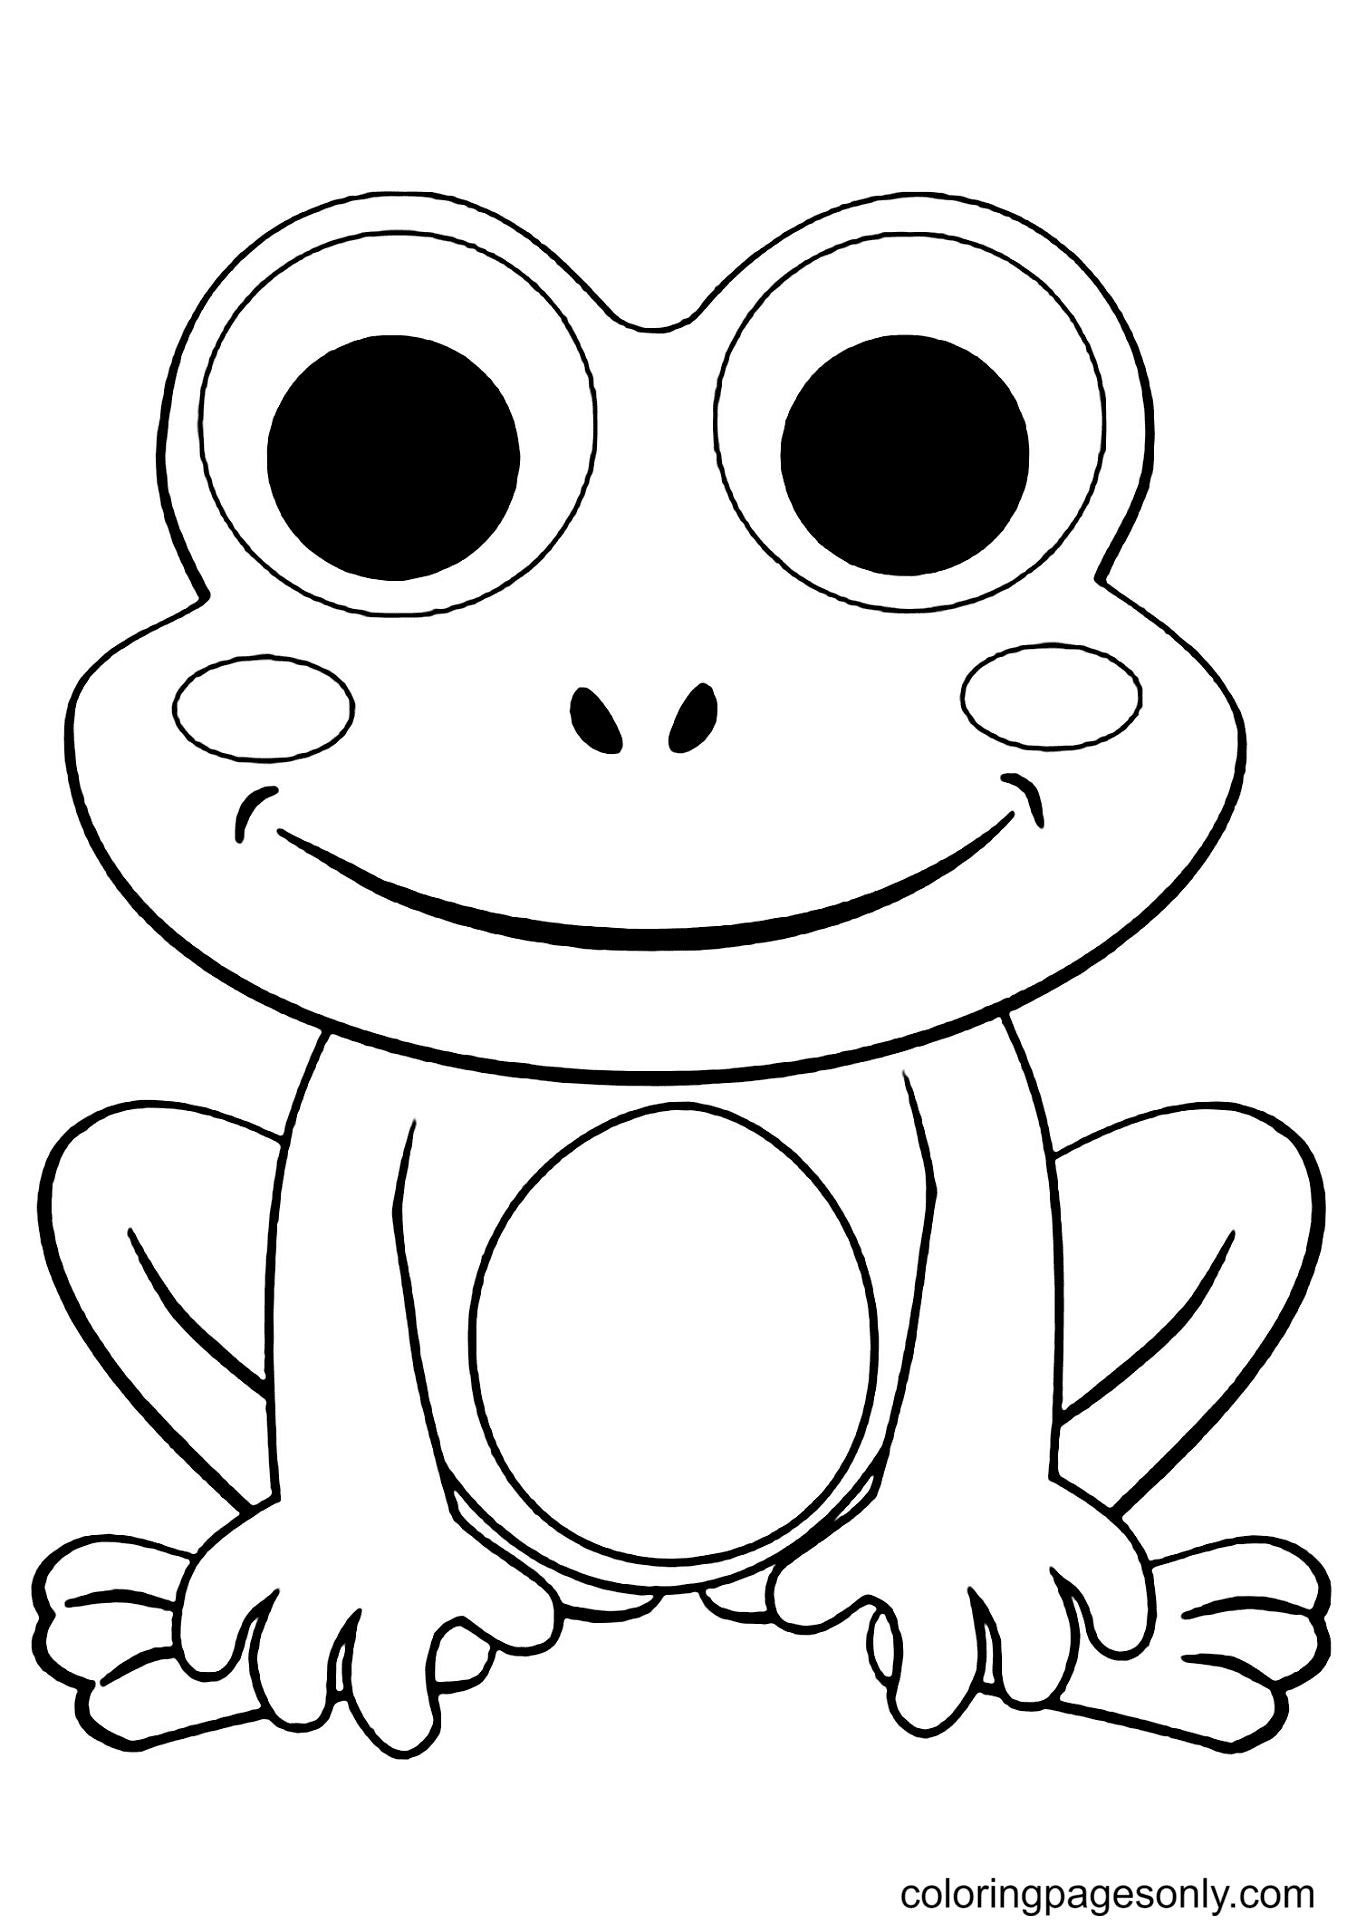 Frog to Print For Free Coloring Page